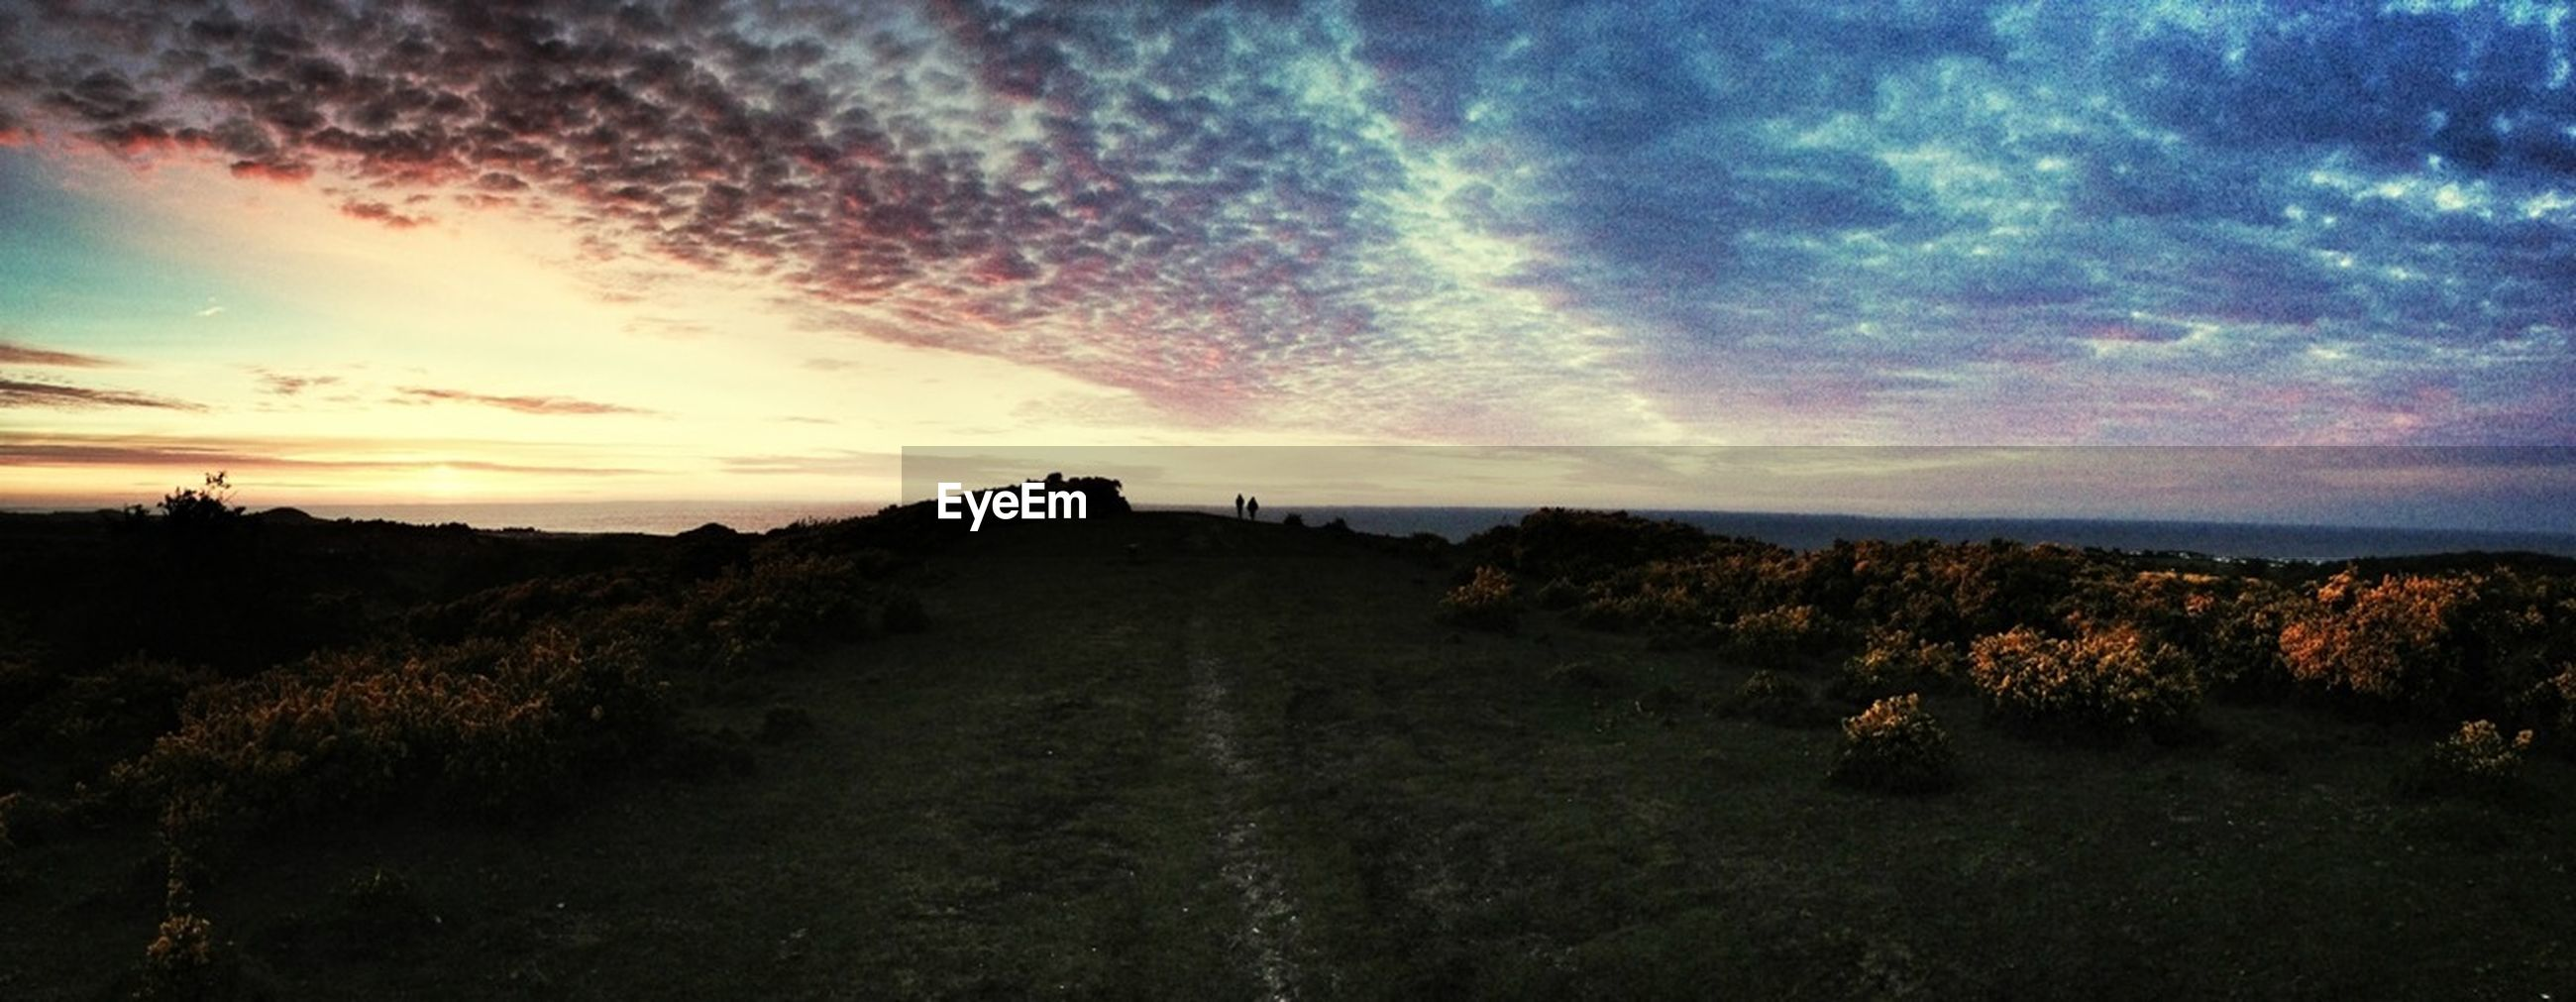 sky, cloud - sky, the way forward, tranquil scene, tranquility, landscape, scenics, sunset, cloudy, beauty in nature, nature, dirt road, cloud, tree, field, road, diminishing perspective, non-urban scene, dramatic sky, plant